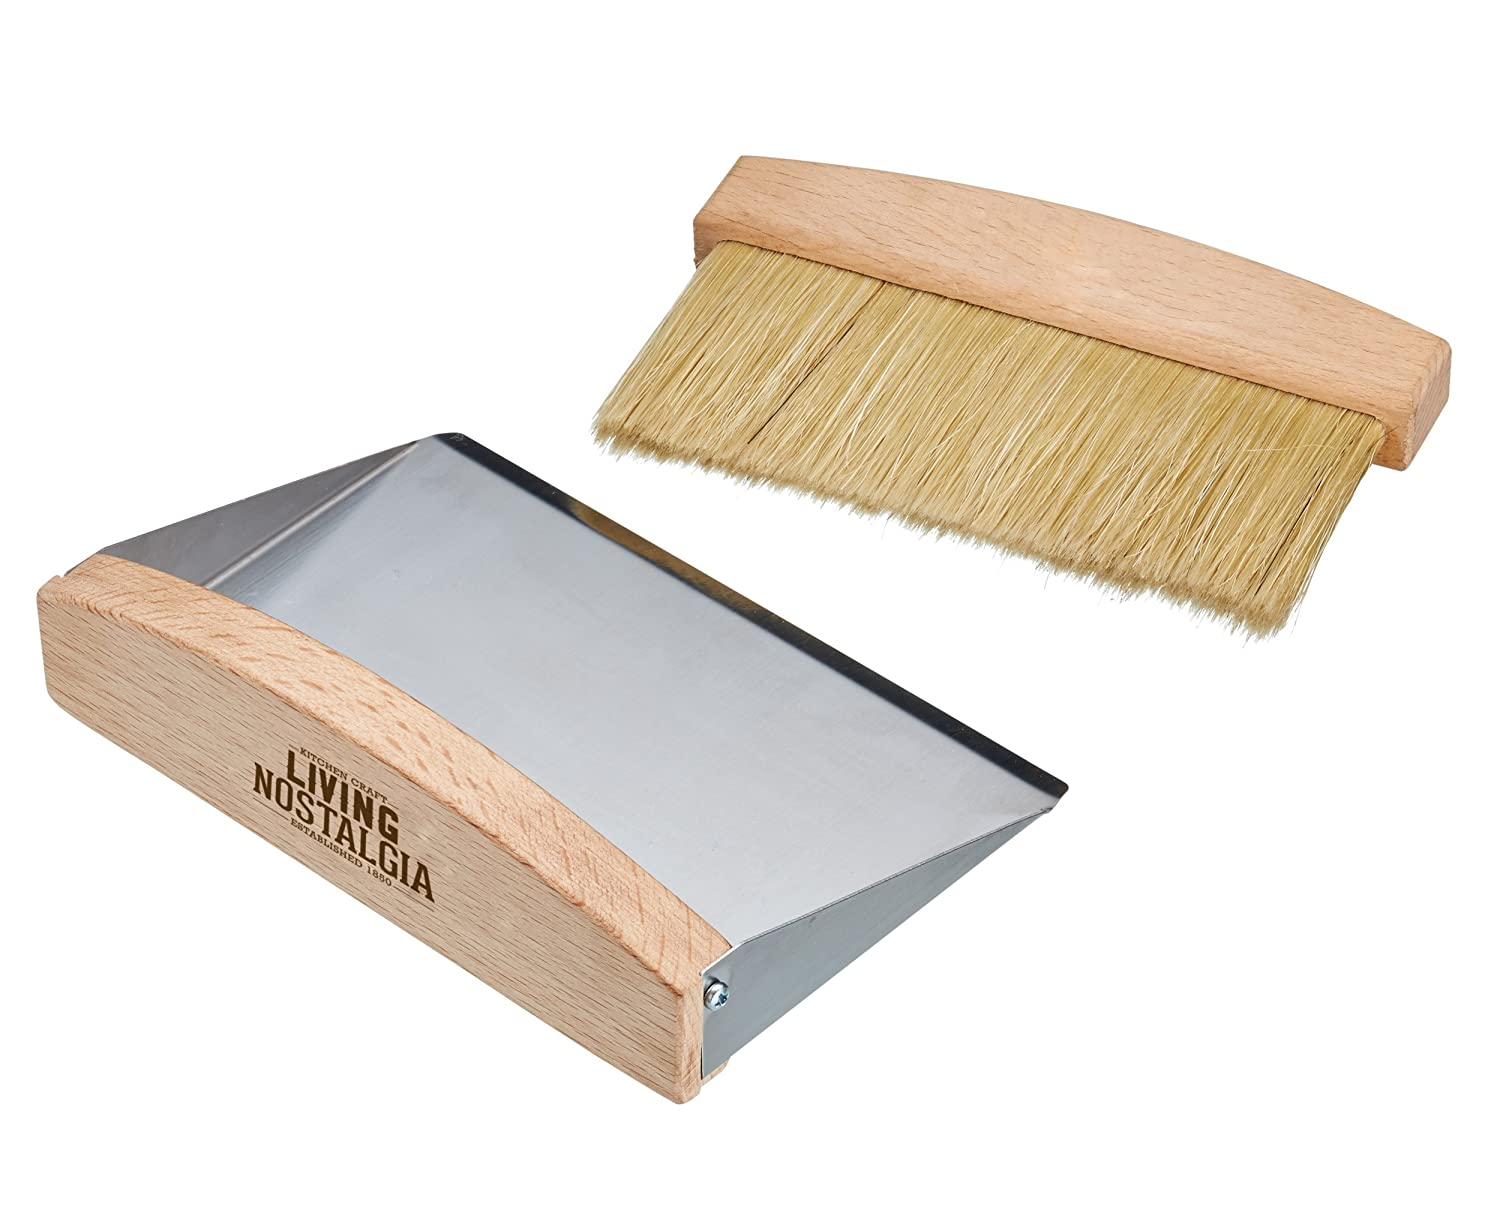 Kitchencraft Living Nostalgia Table-top Dustpan And Brush Set, 16 x 11 x 14cm